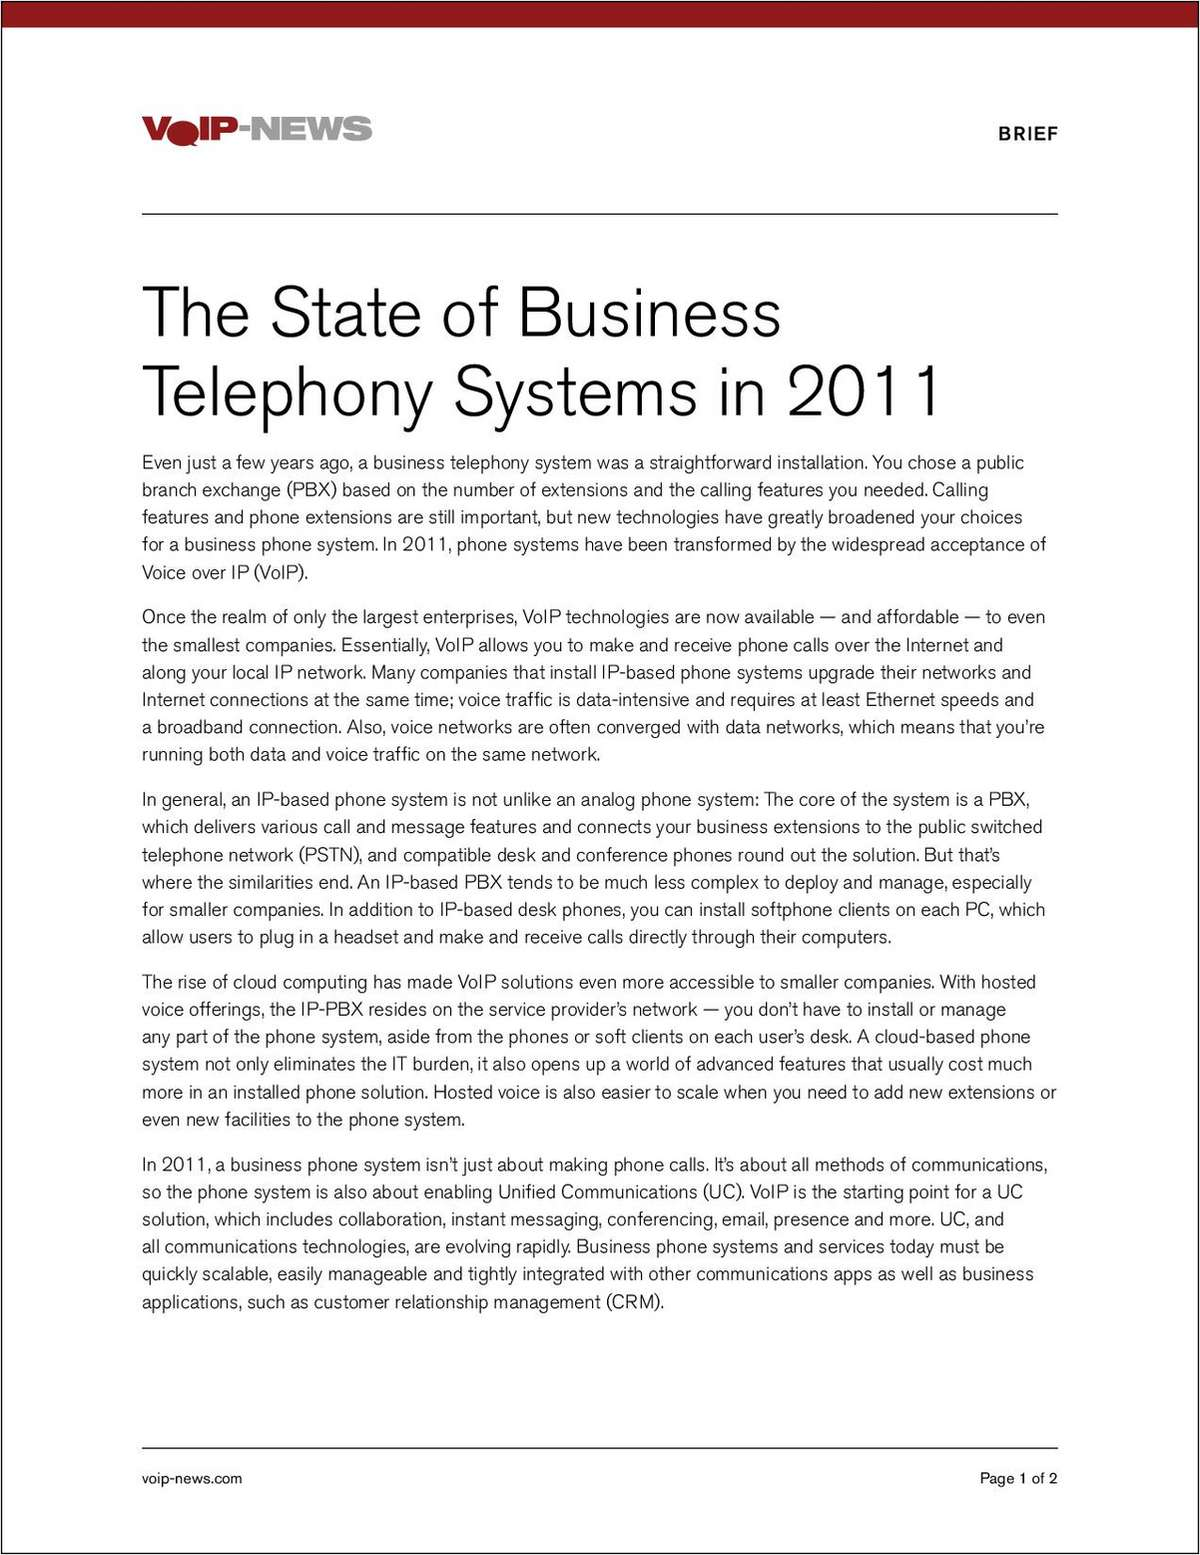 The State of Business Telephony Systems in 2011